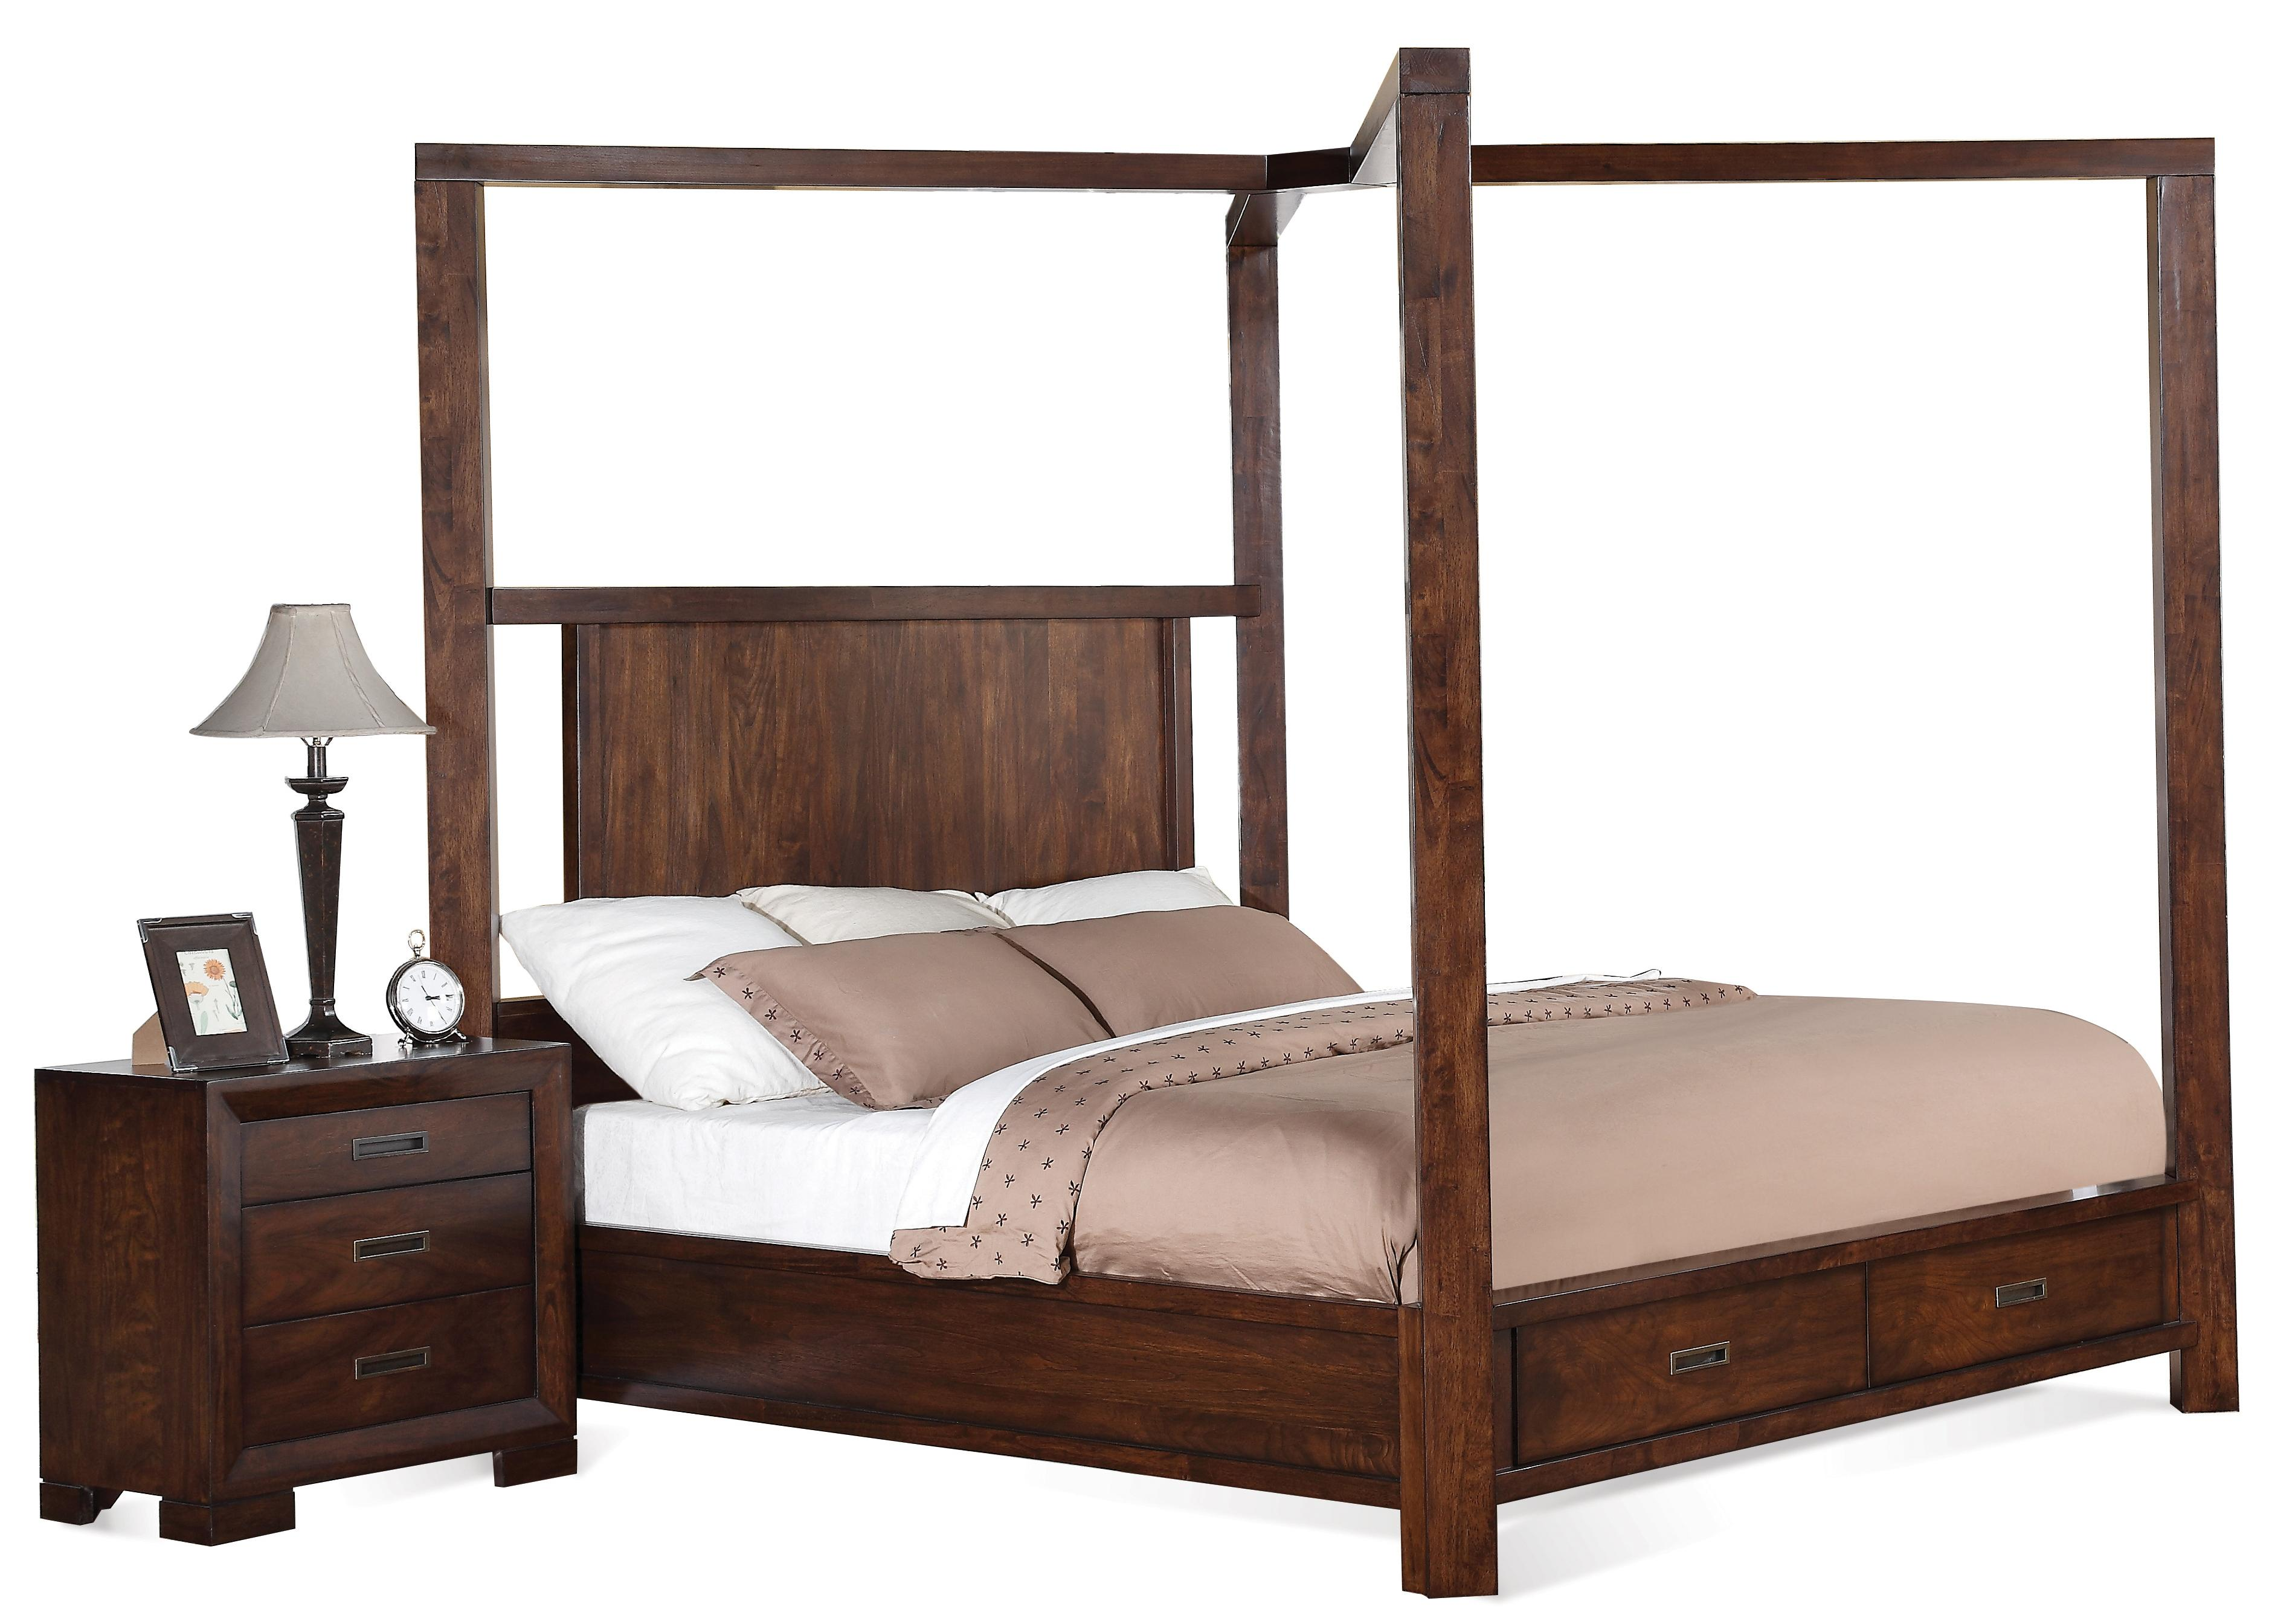 Riata Queen Canopy Storage Bed By Riverside Furniture